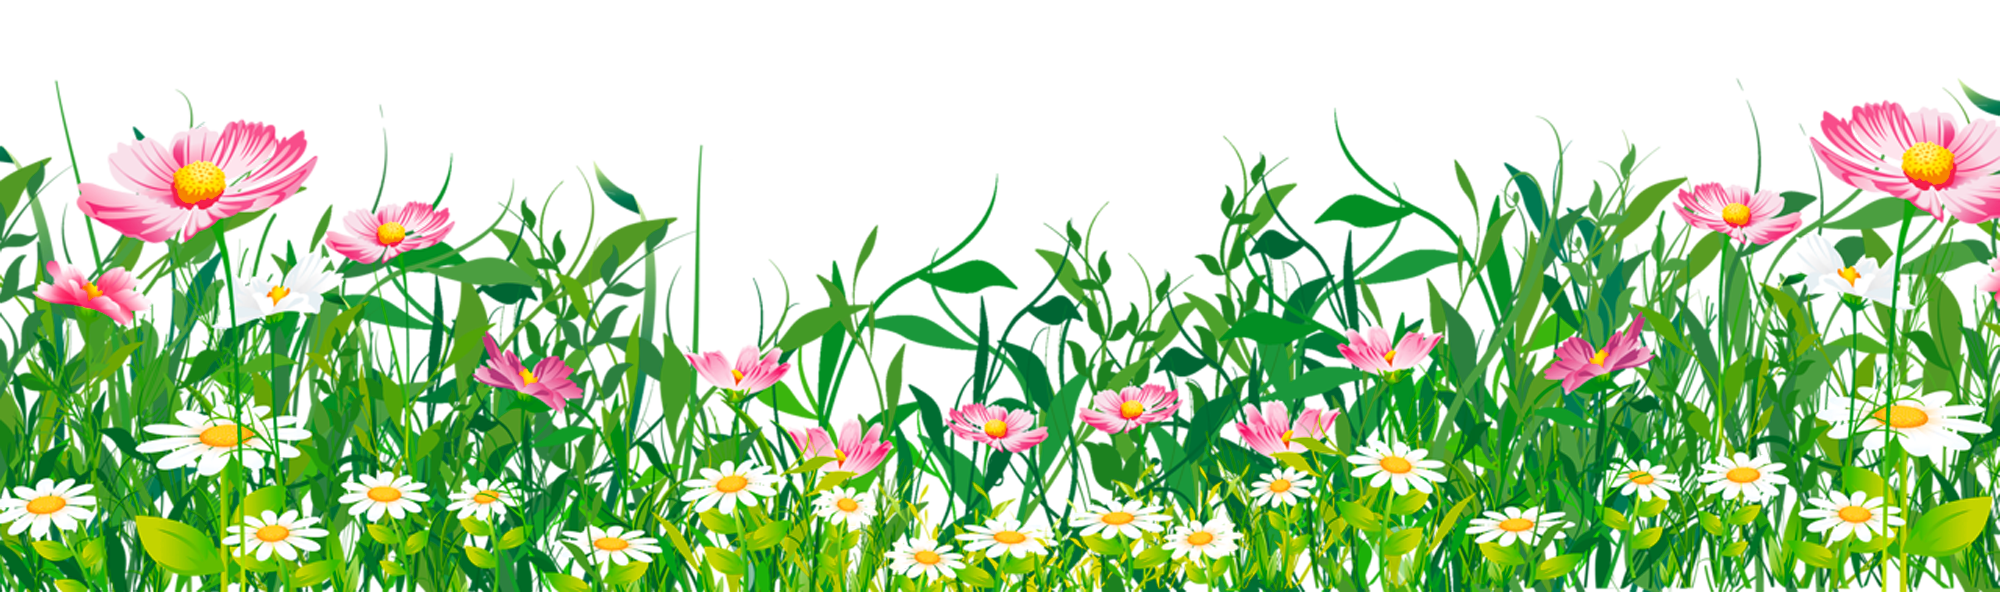 Flower clipart grass. With flowers png gallery